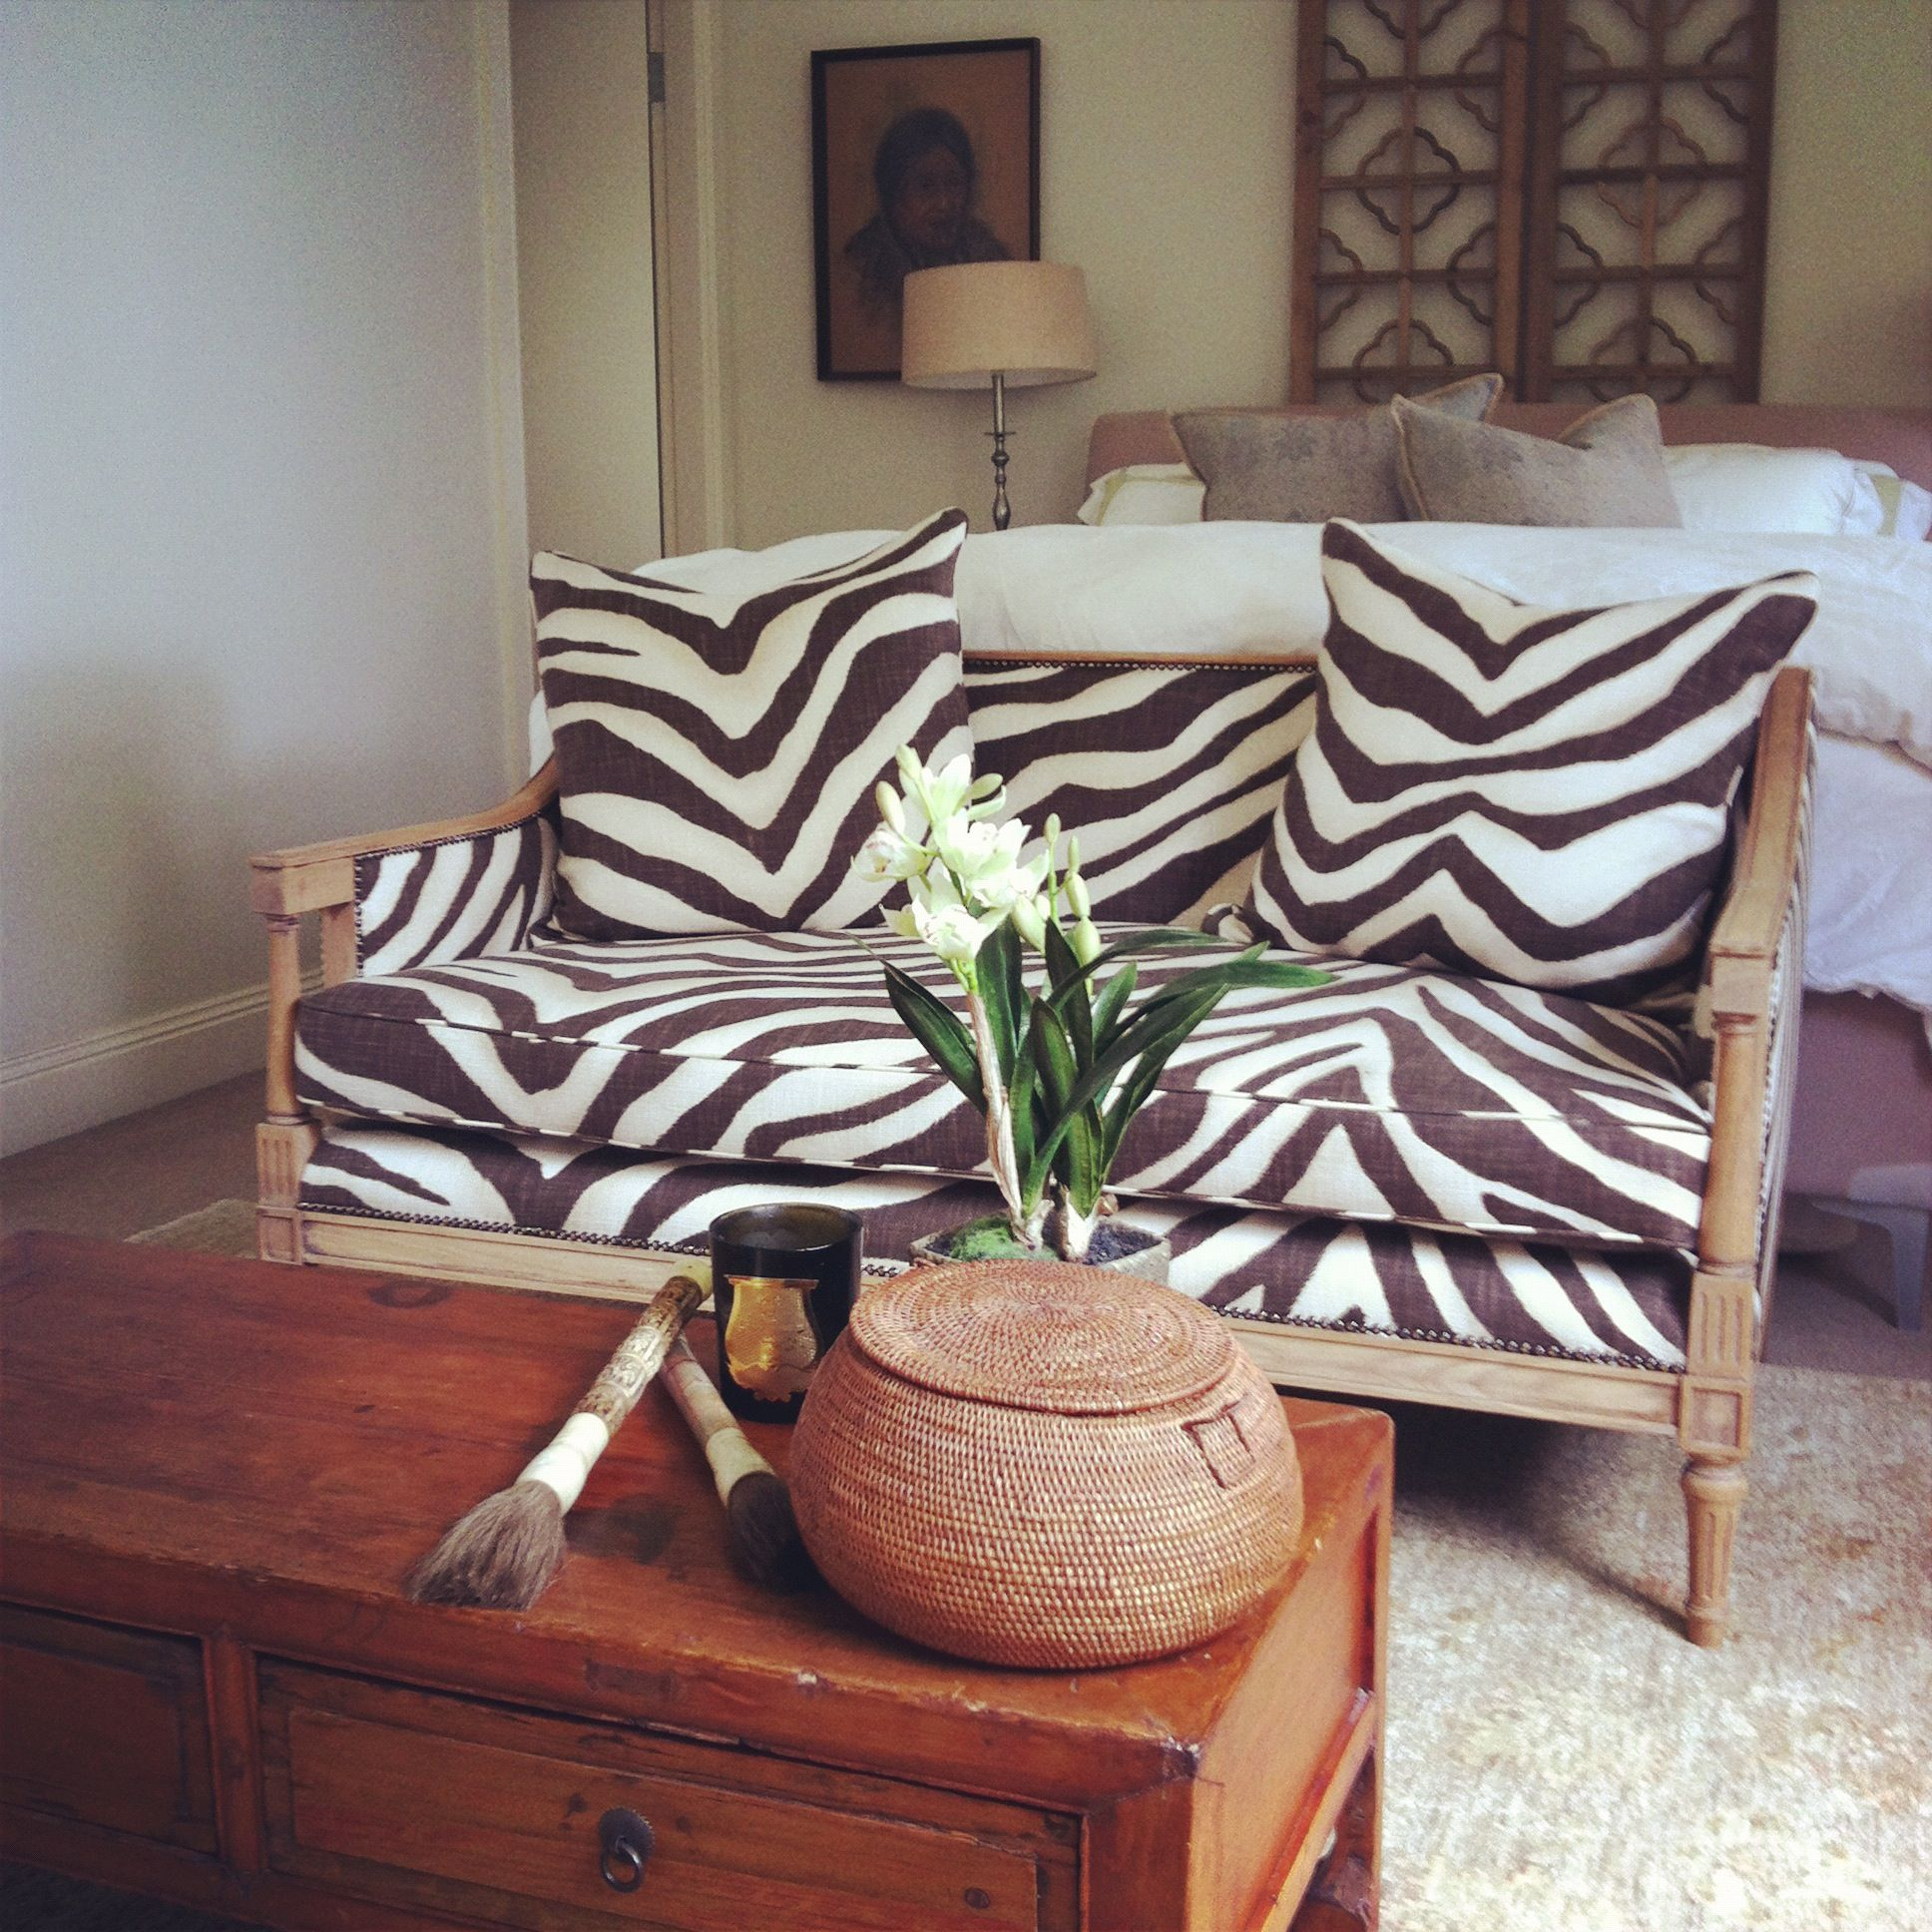 Ralph Lauren Tangiers Zebra on a vintage sofa eBay find stripped